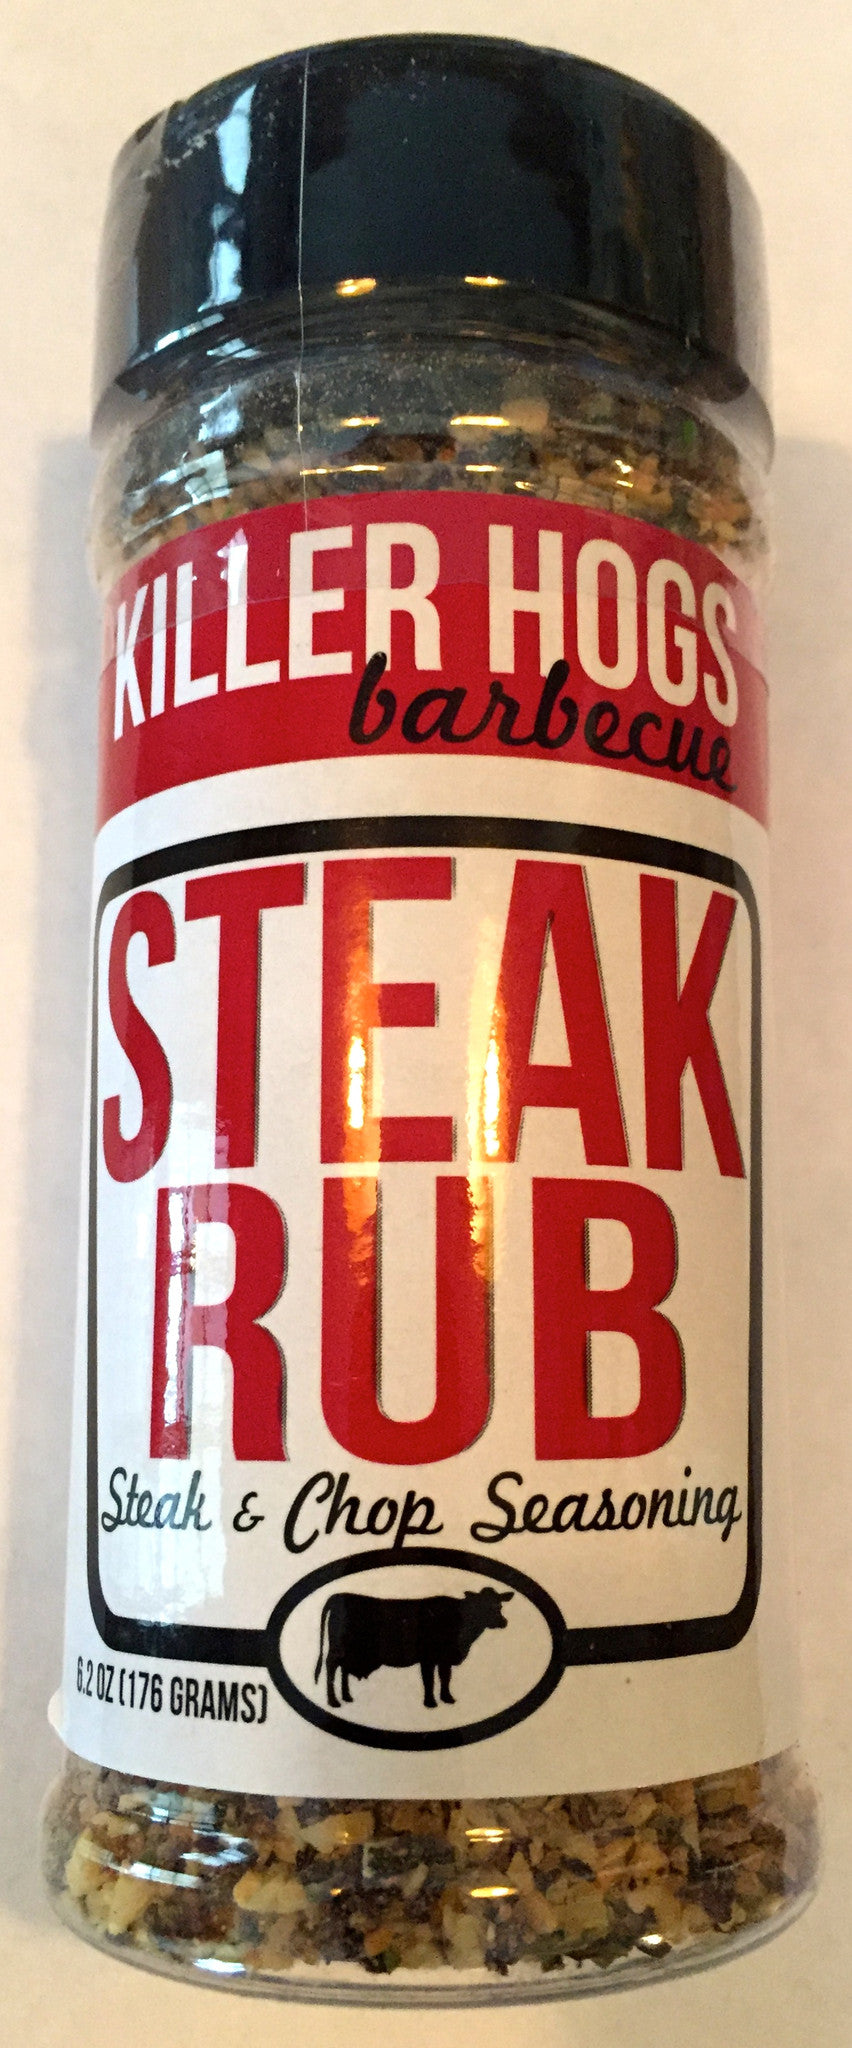 Killer Hogs Steak Rub 6.2oz